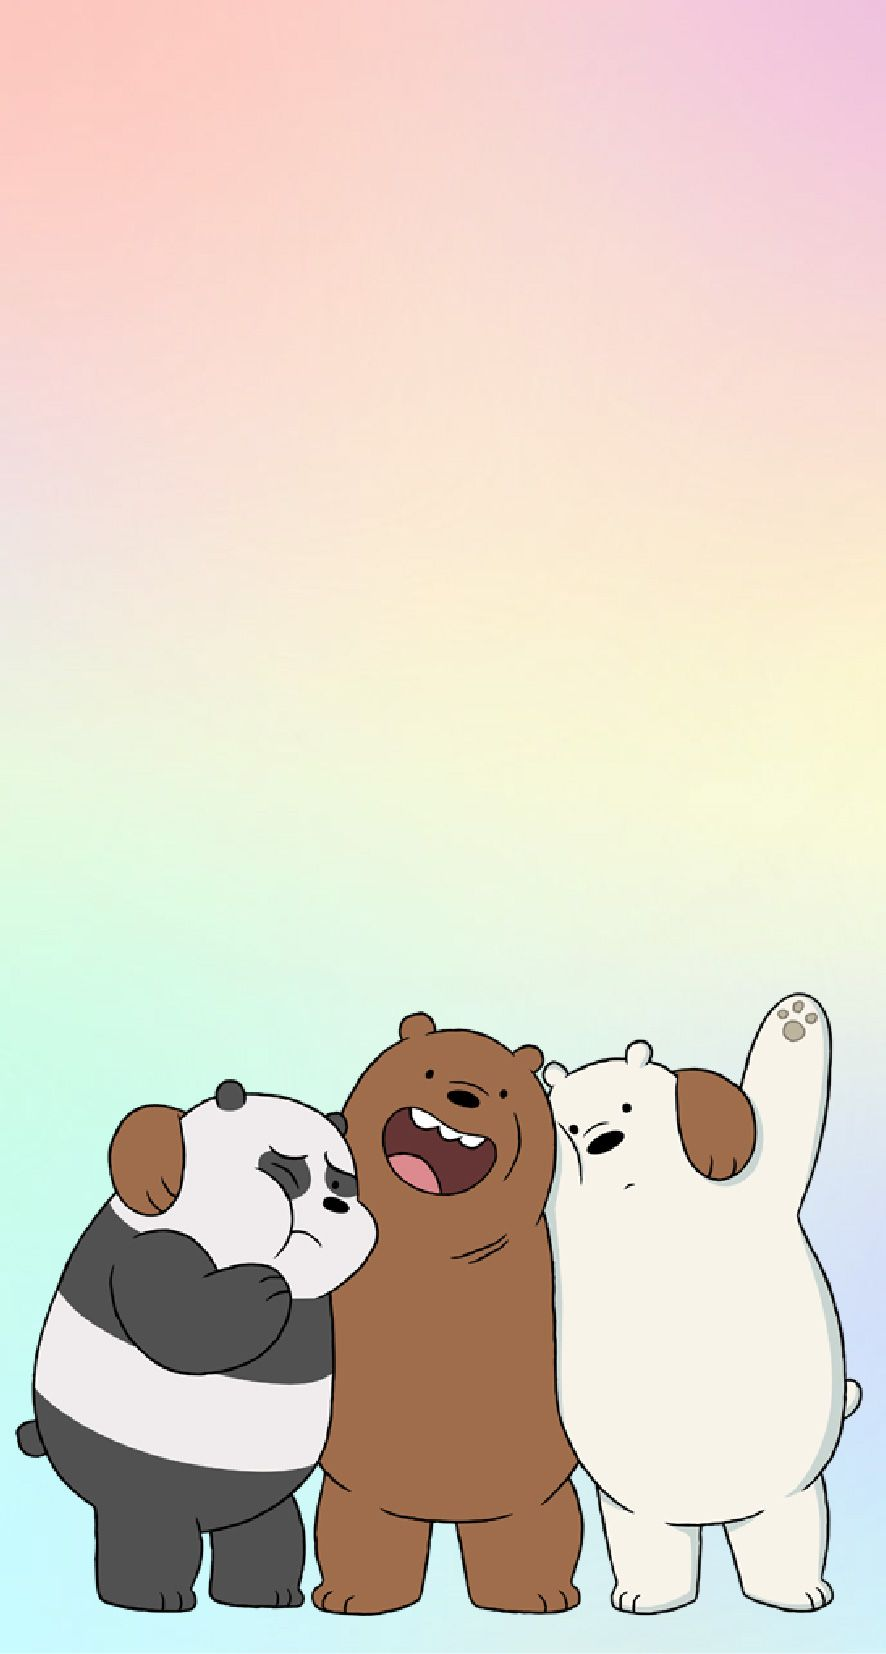 pin by heraqt on p a n d a q pinterest bare bears we bare bears